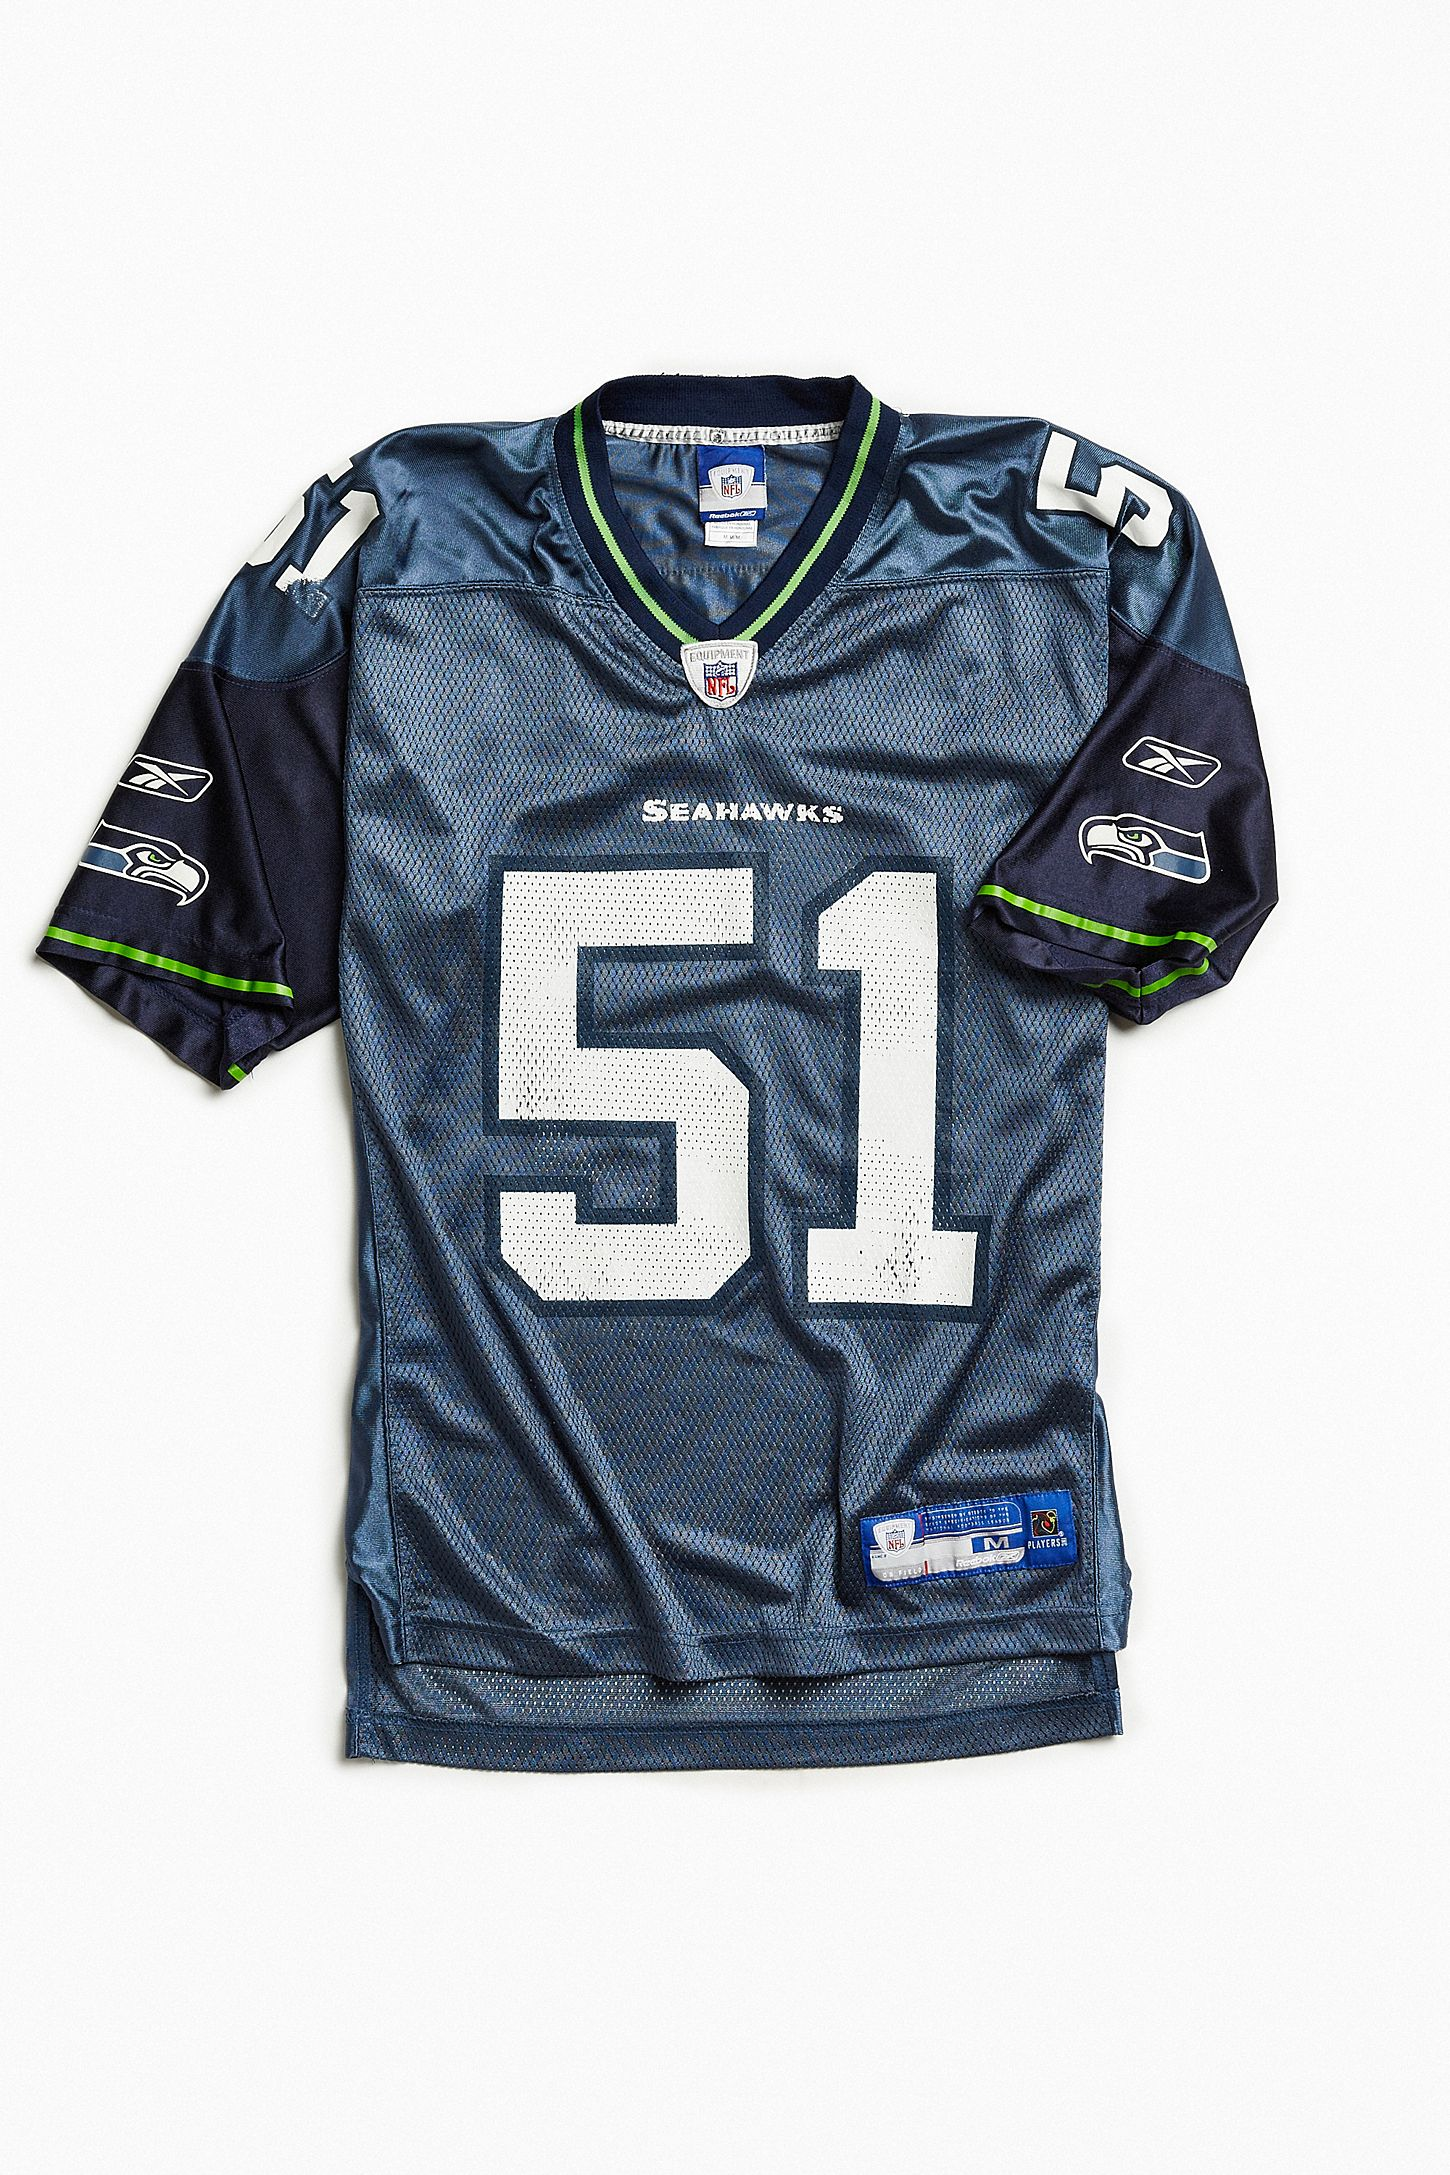 best loved efa8f 44eaa Vintage NFL Seattle Seahawks Lofa Tatupu Jersey | Urban ...